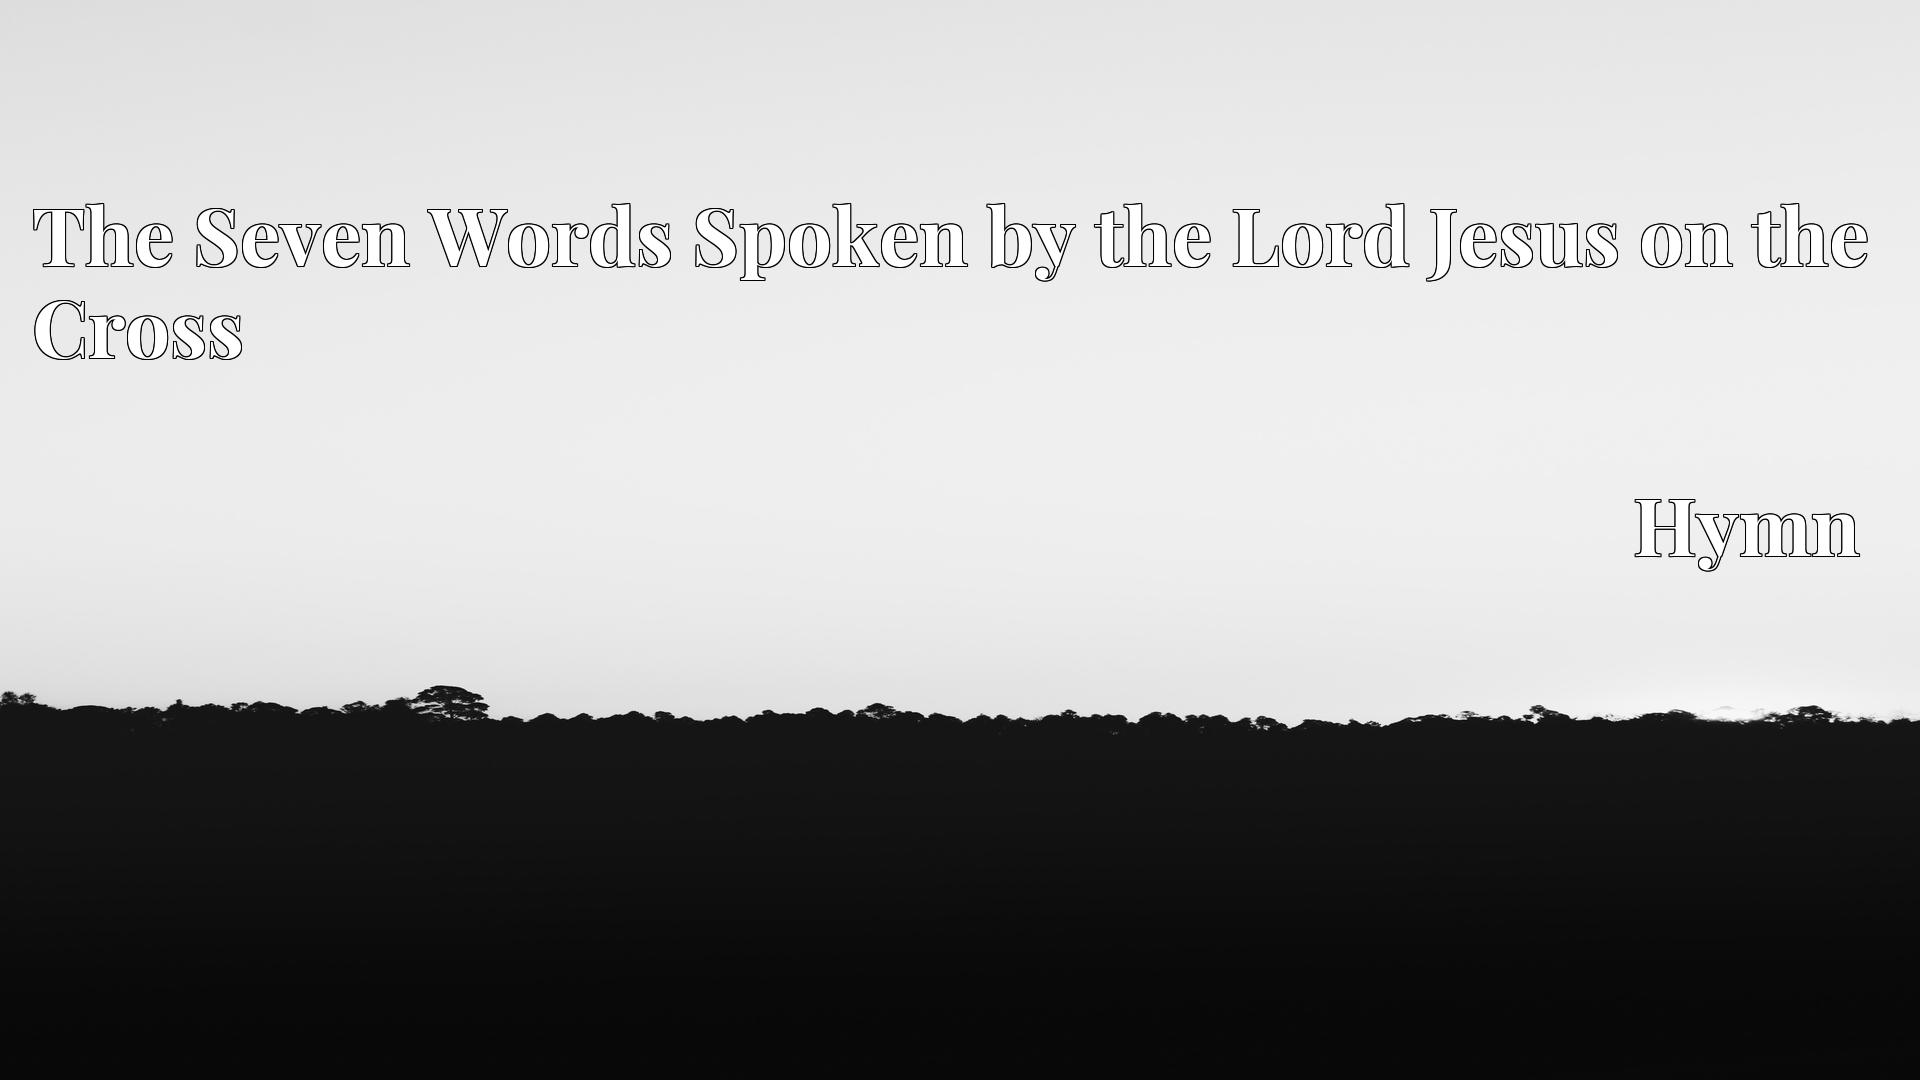 The Seven Words Spoken by the Lord Jesus on the Cross - Hymn